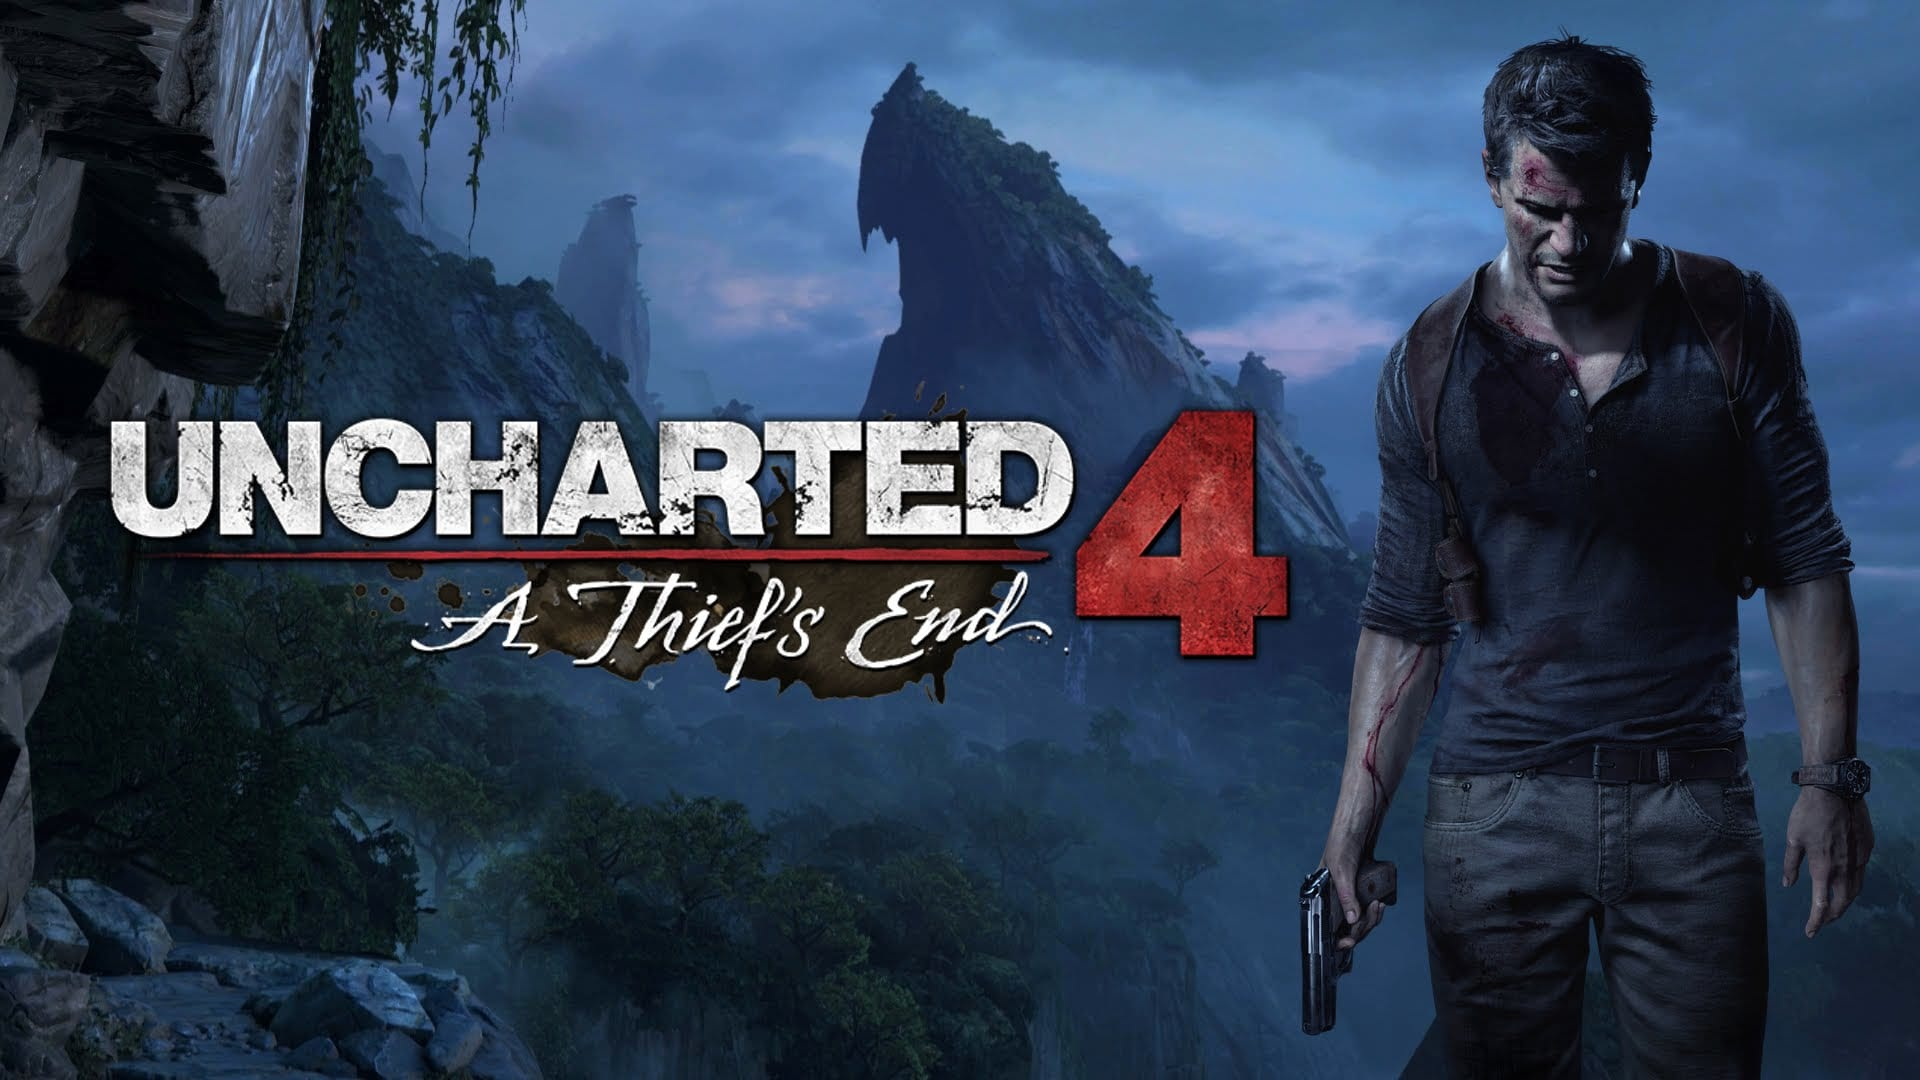 Uncharted 4 A Thief's End main